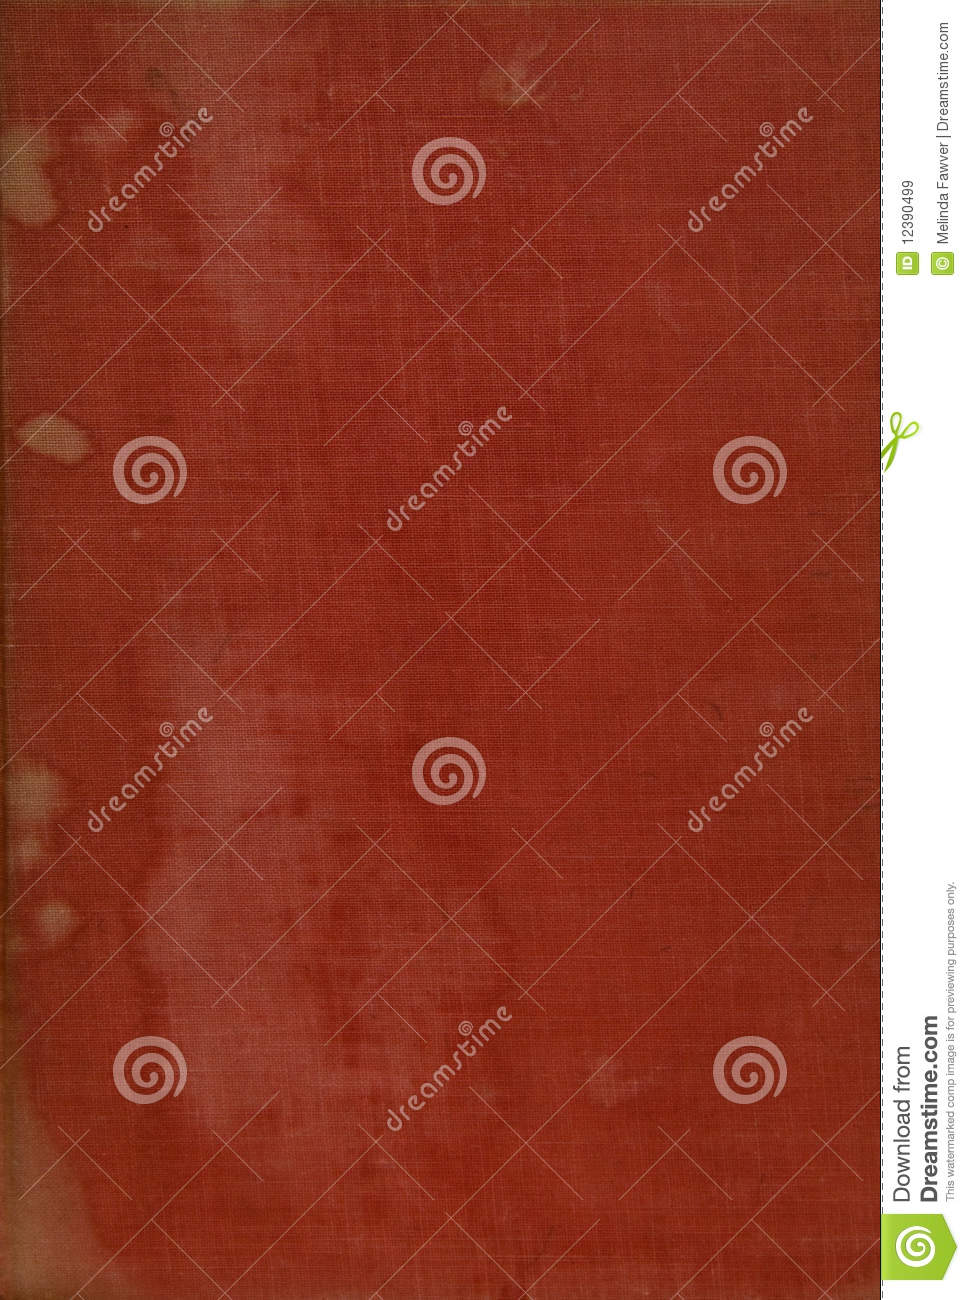 Grunge Book Cover Texture : Bright grunge marsh book cover stock image